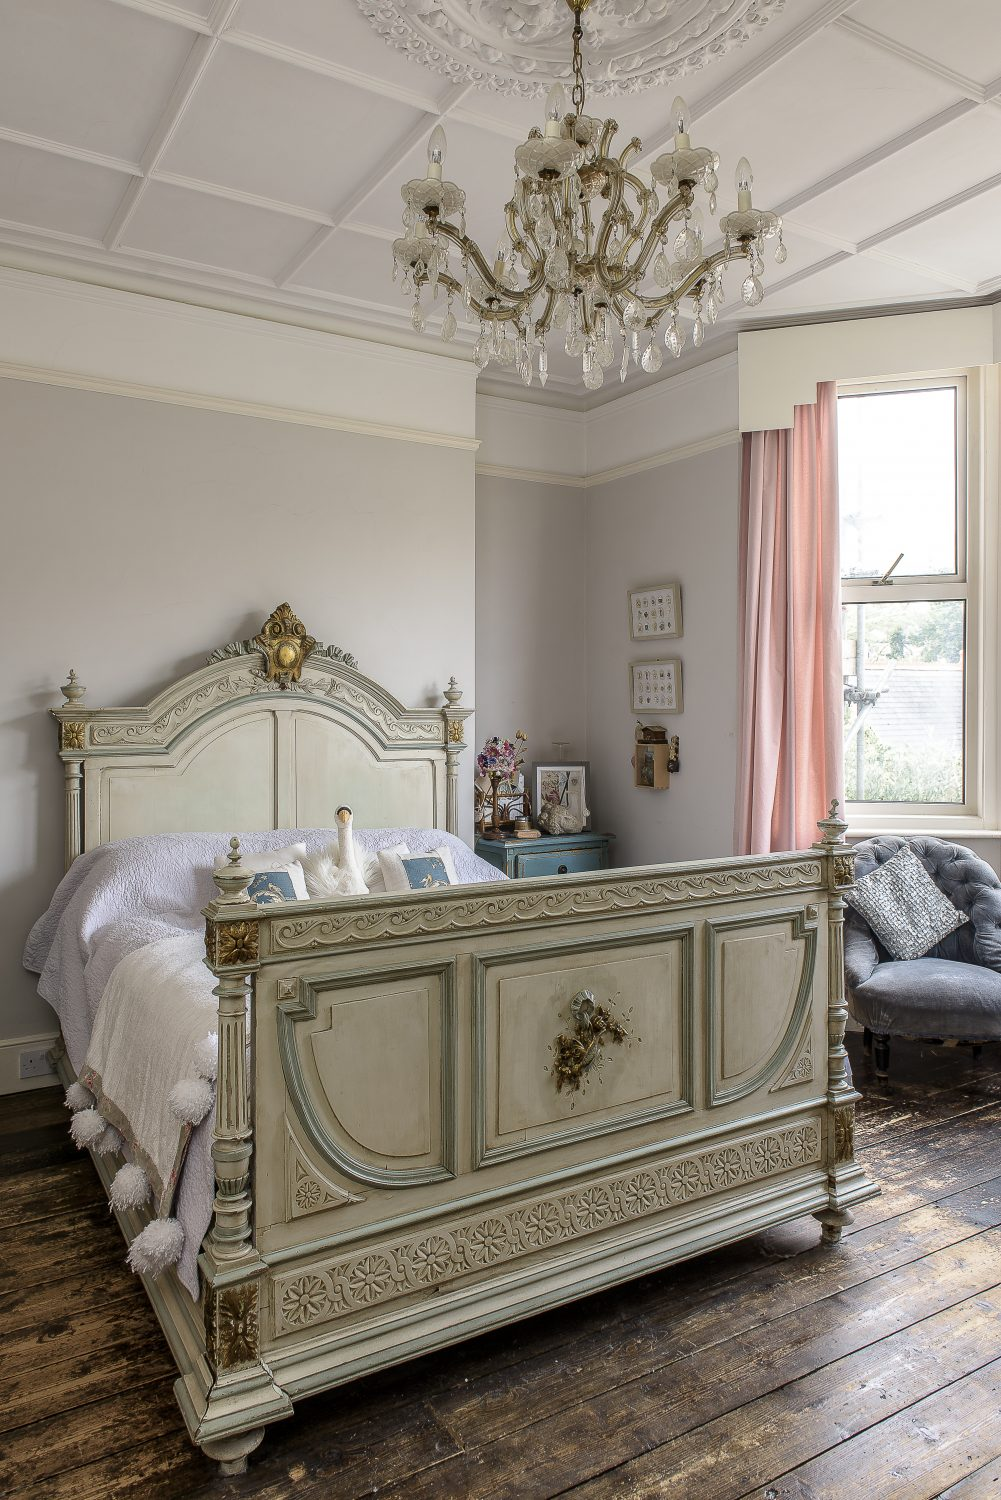 With stripped back, bare wood floors a feature throughout the house, this bedroom is softened with layers of cosy quilts and plump cushions